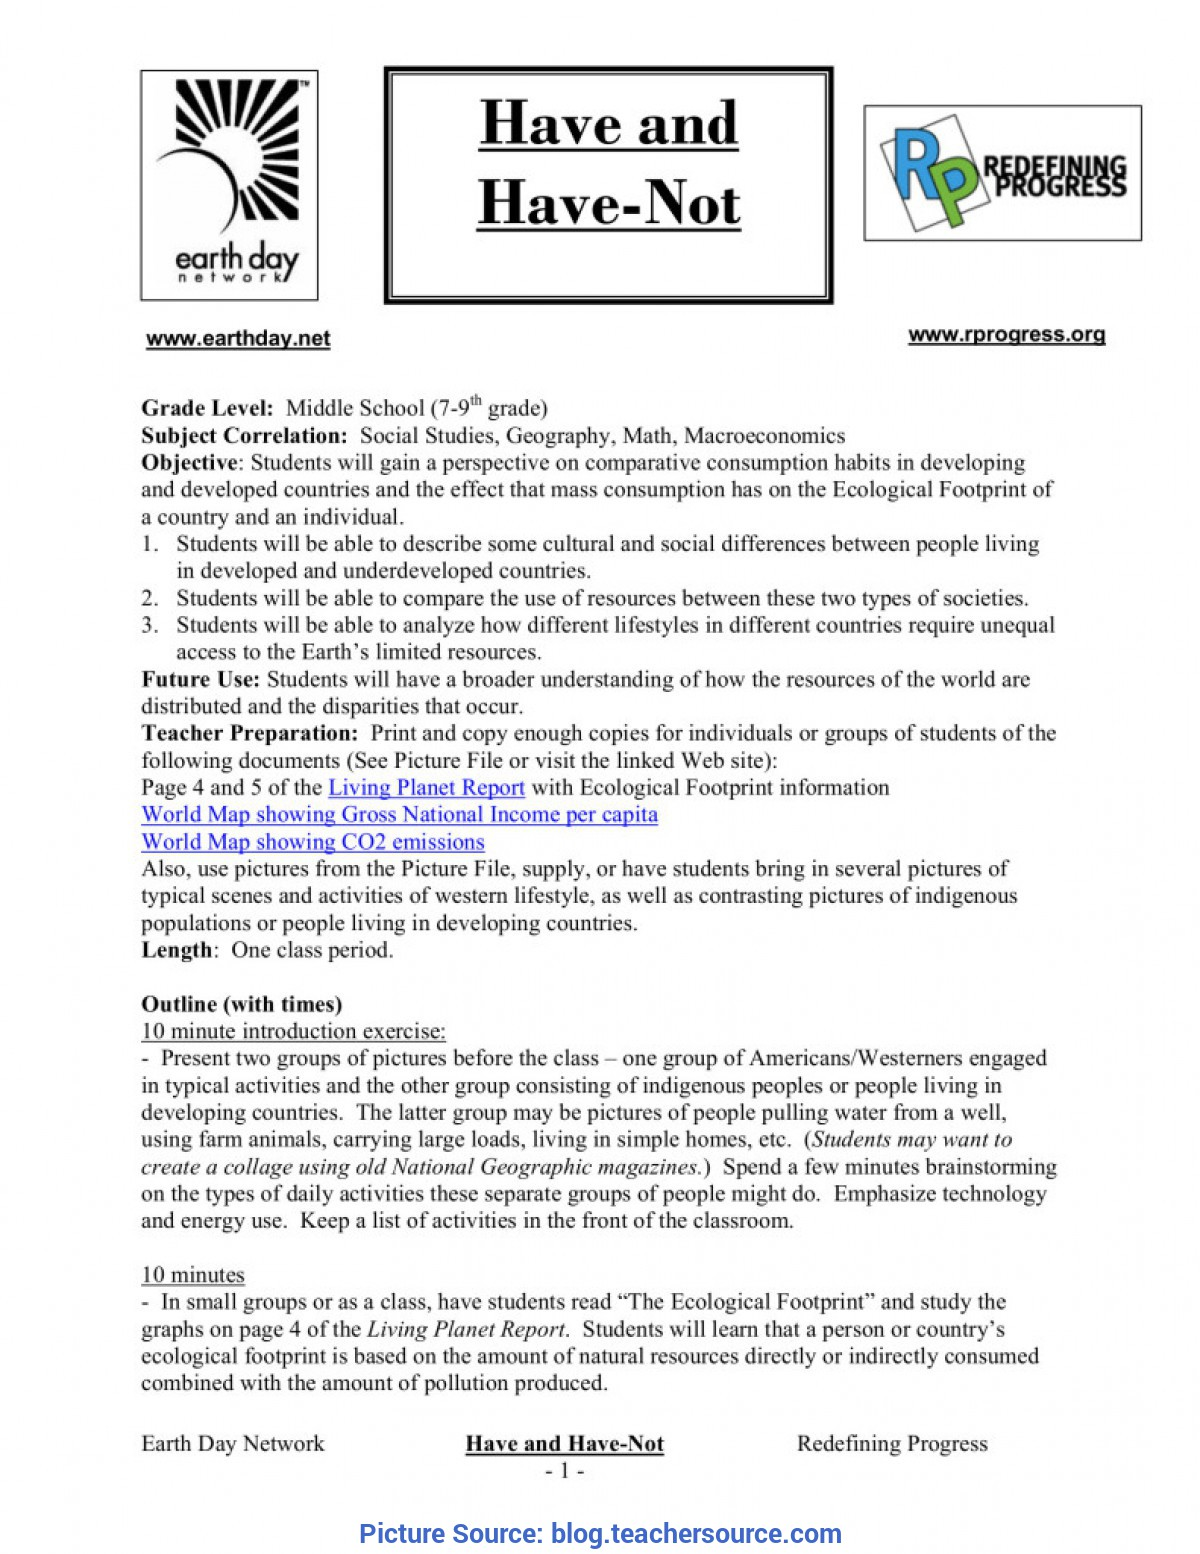 hight resolution of Top Earth Science Lesson Plans 9Th Grade Science Discussion Starters -  Educational Innovations - Ota Tech